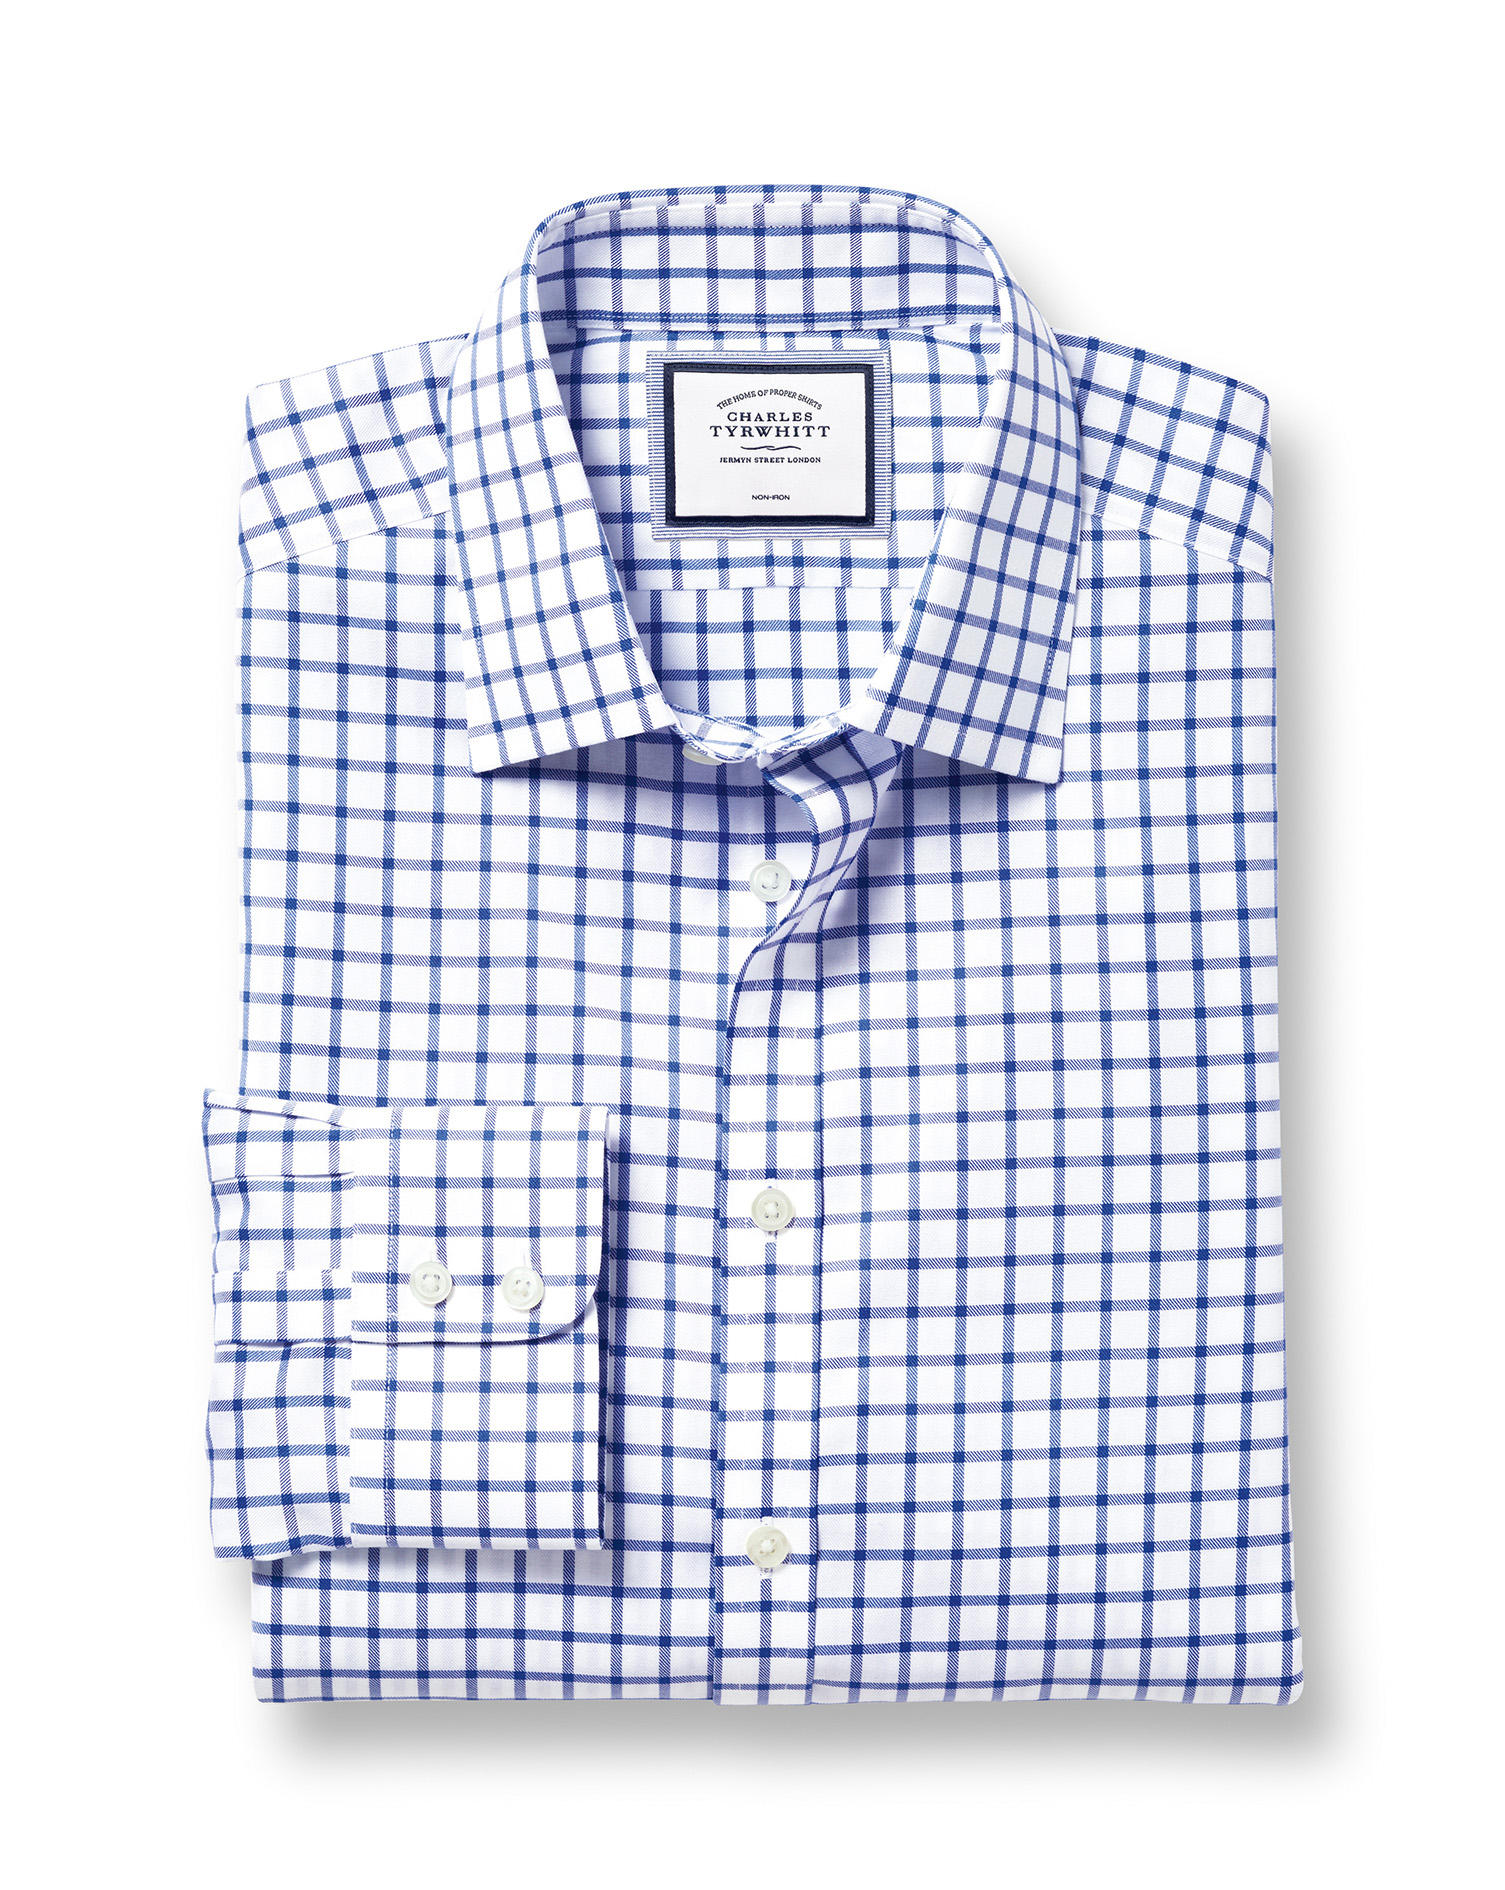 Classic Fit Non-Iron Royal Blue Grid Check Twill Cotton Formal Shirt Single Cuff Size 17/34 by Charl